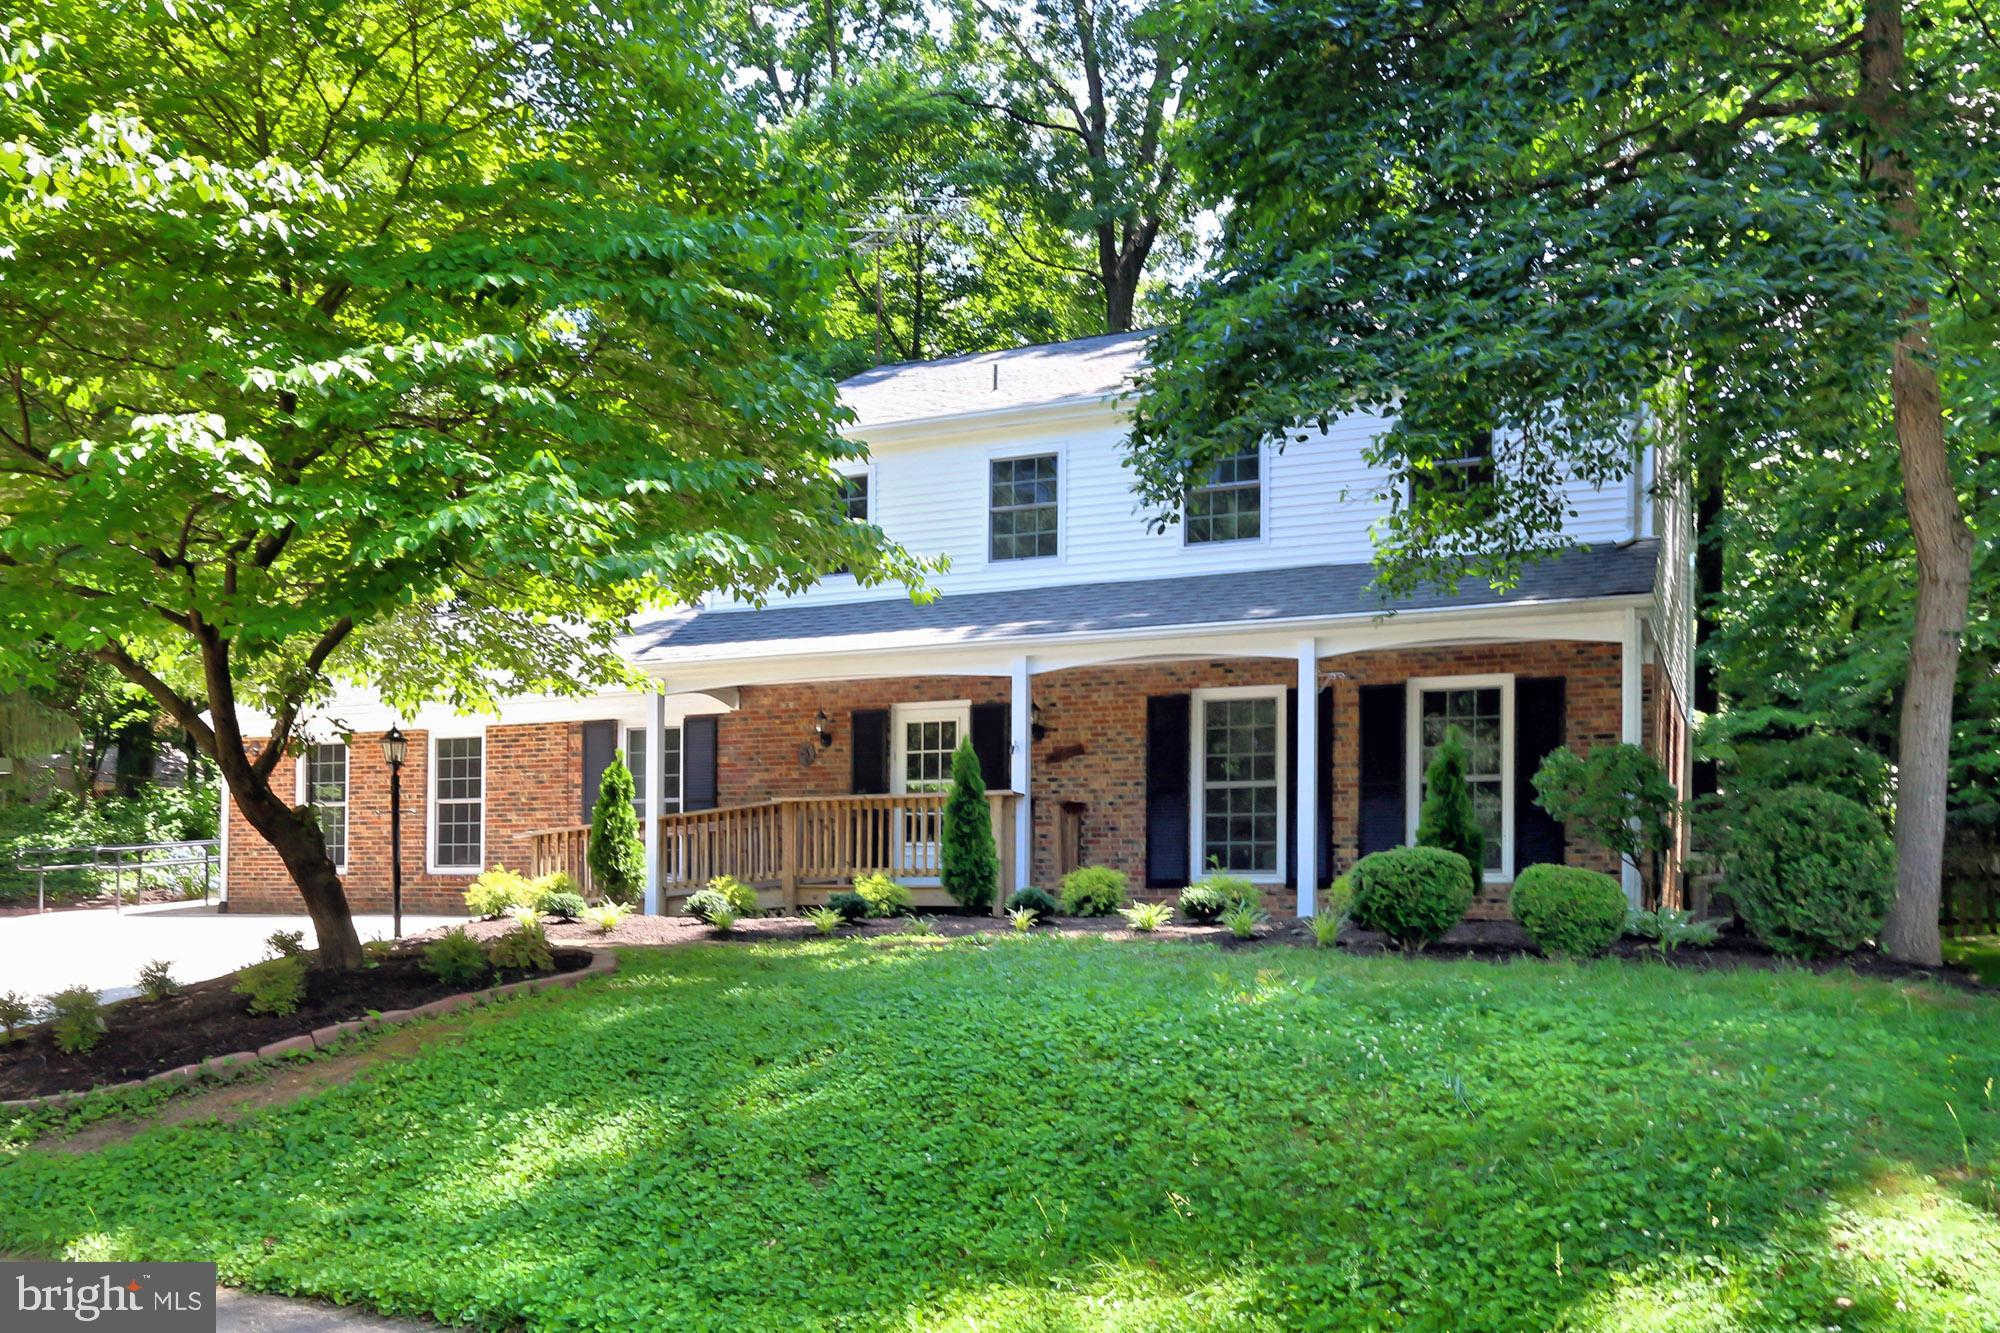 8303 Botsford Court, Springfield, VA 22152 has an Open House on  Saturday, July 20, 2019 12:00 PM to 3:00 PM